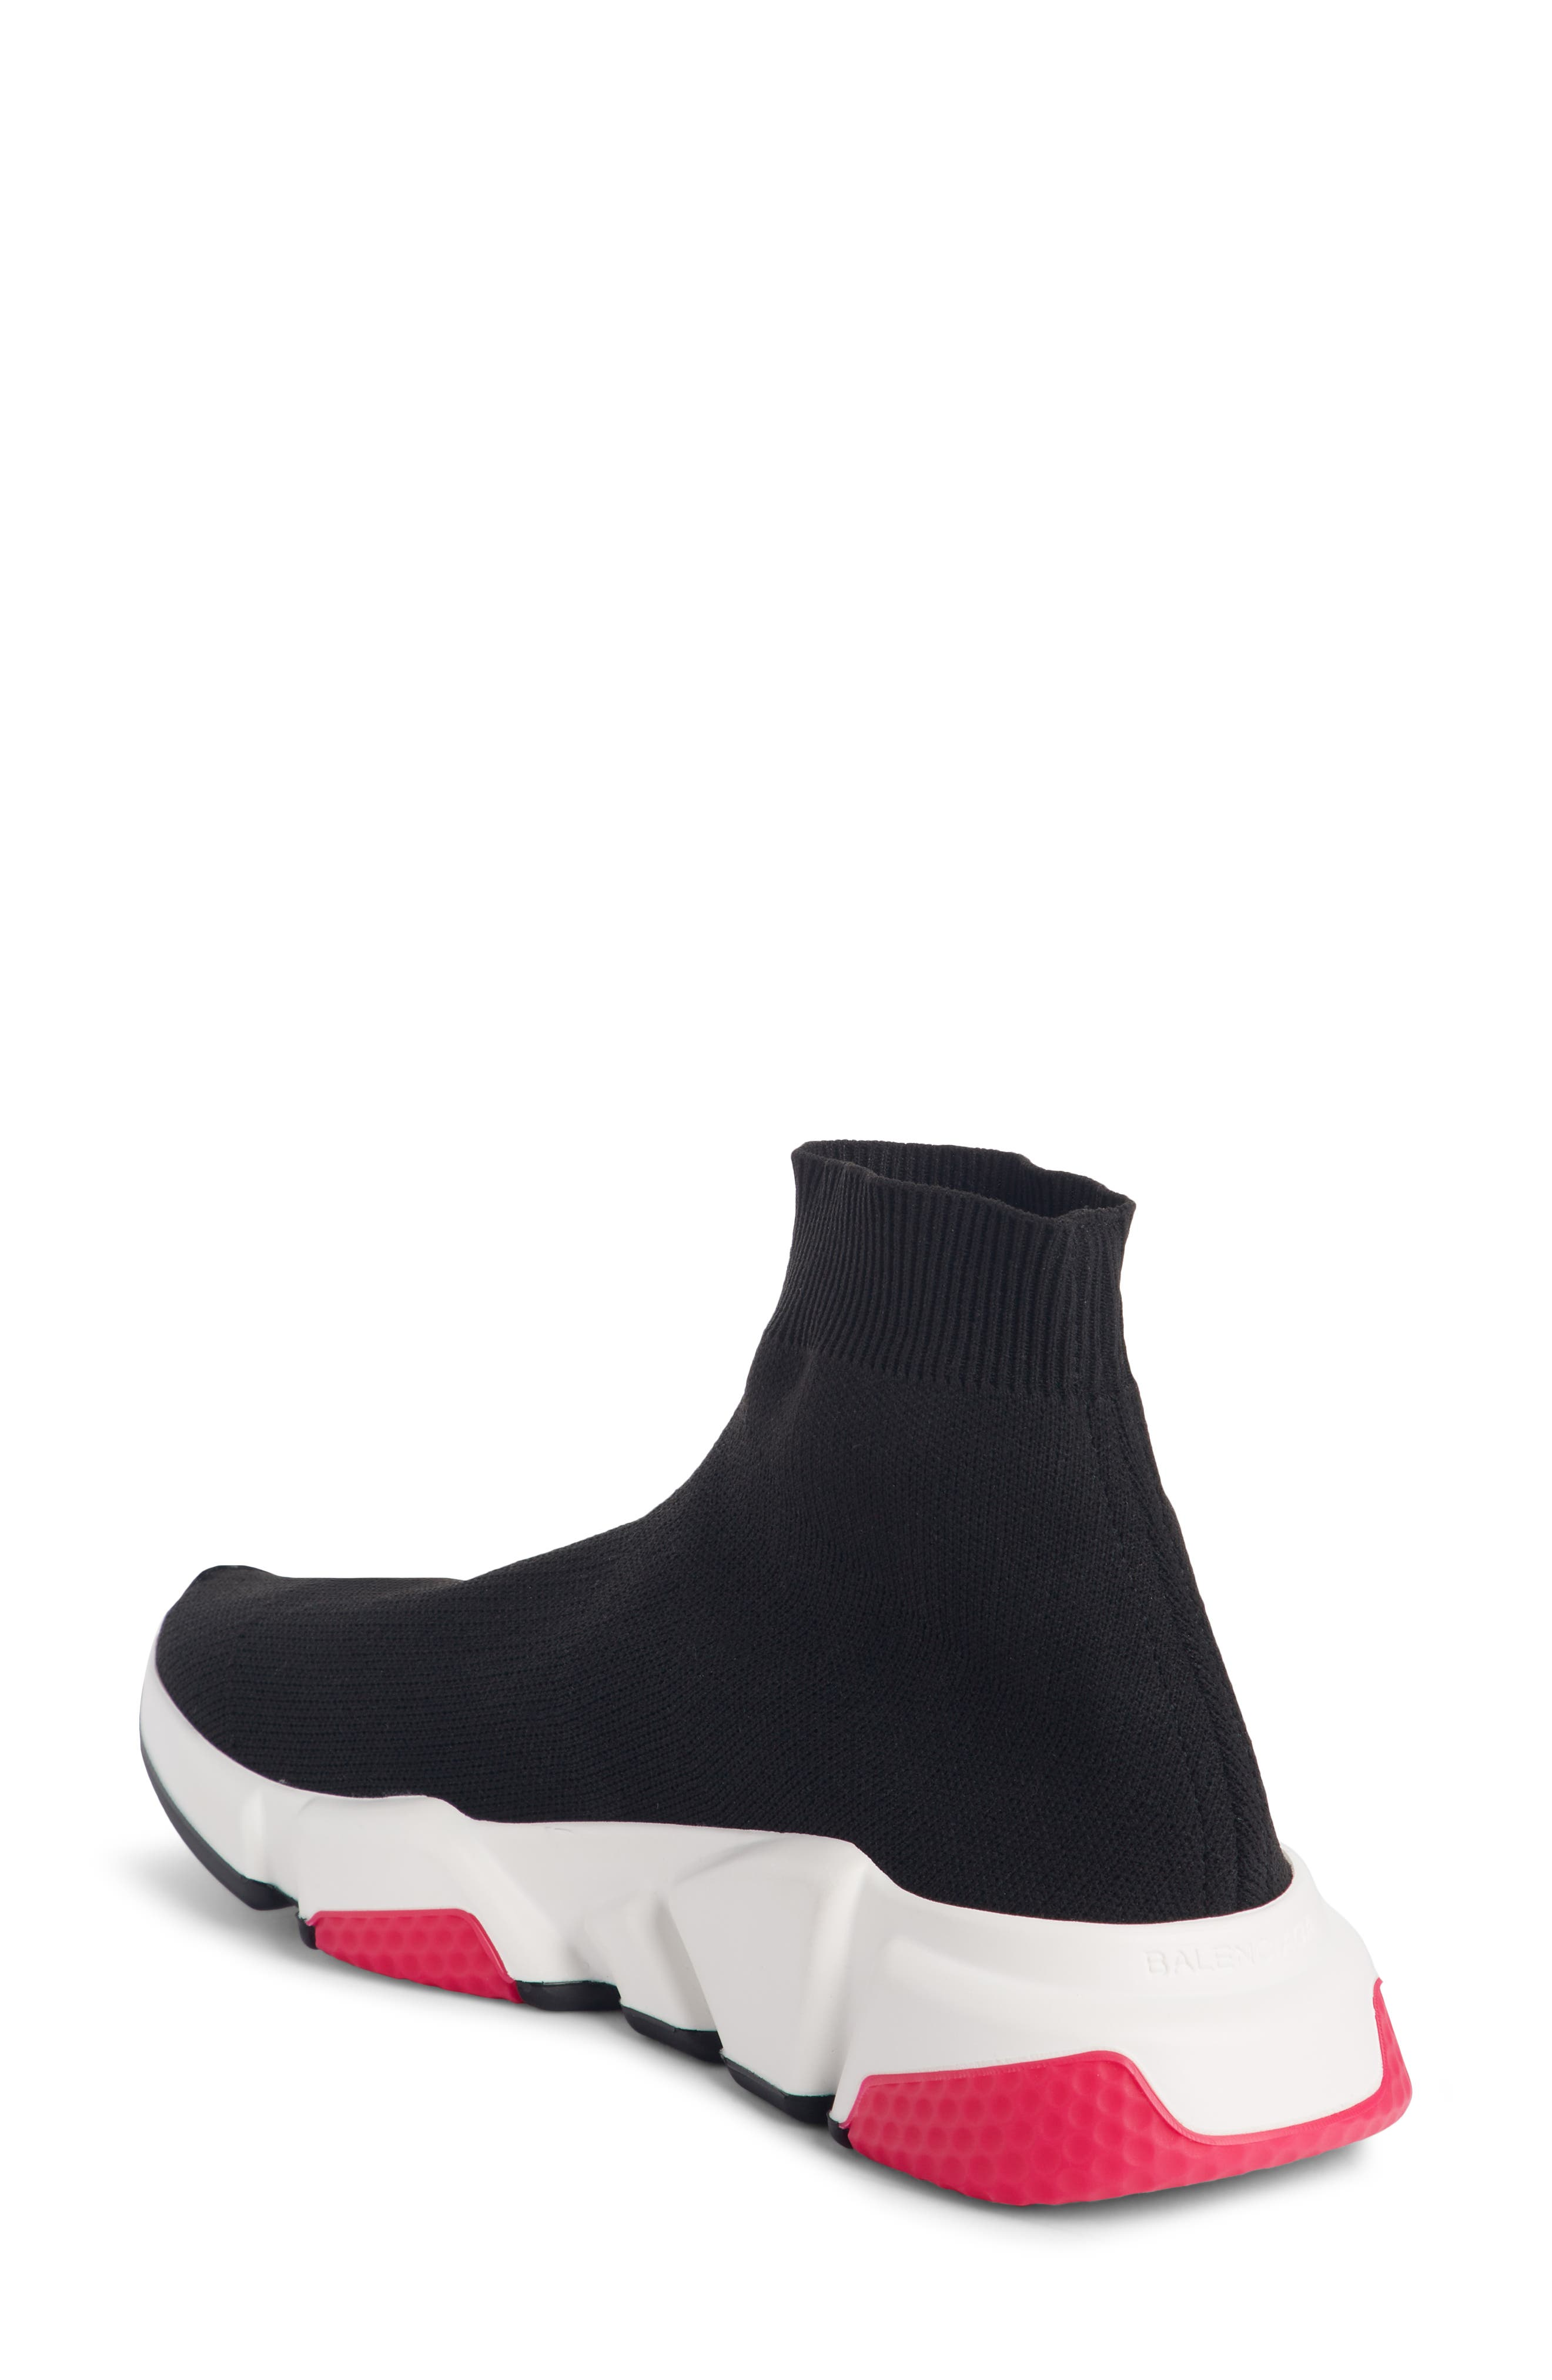 BALENCIAGA,                             Mid Speed Trainer Sock Sneaker,                             Alternate thumbnail 2, color,                             001